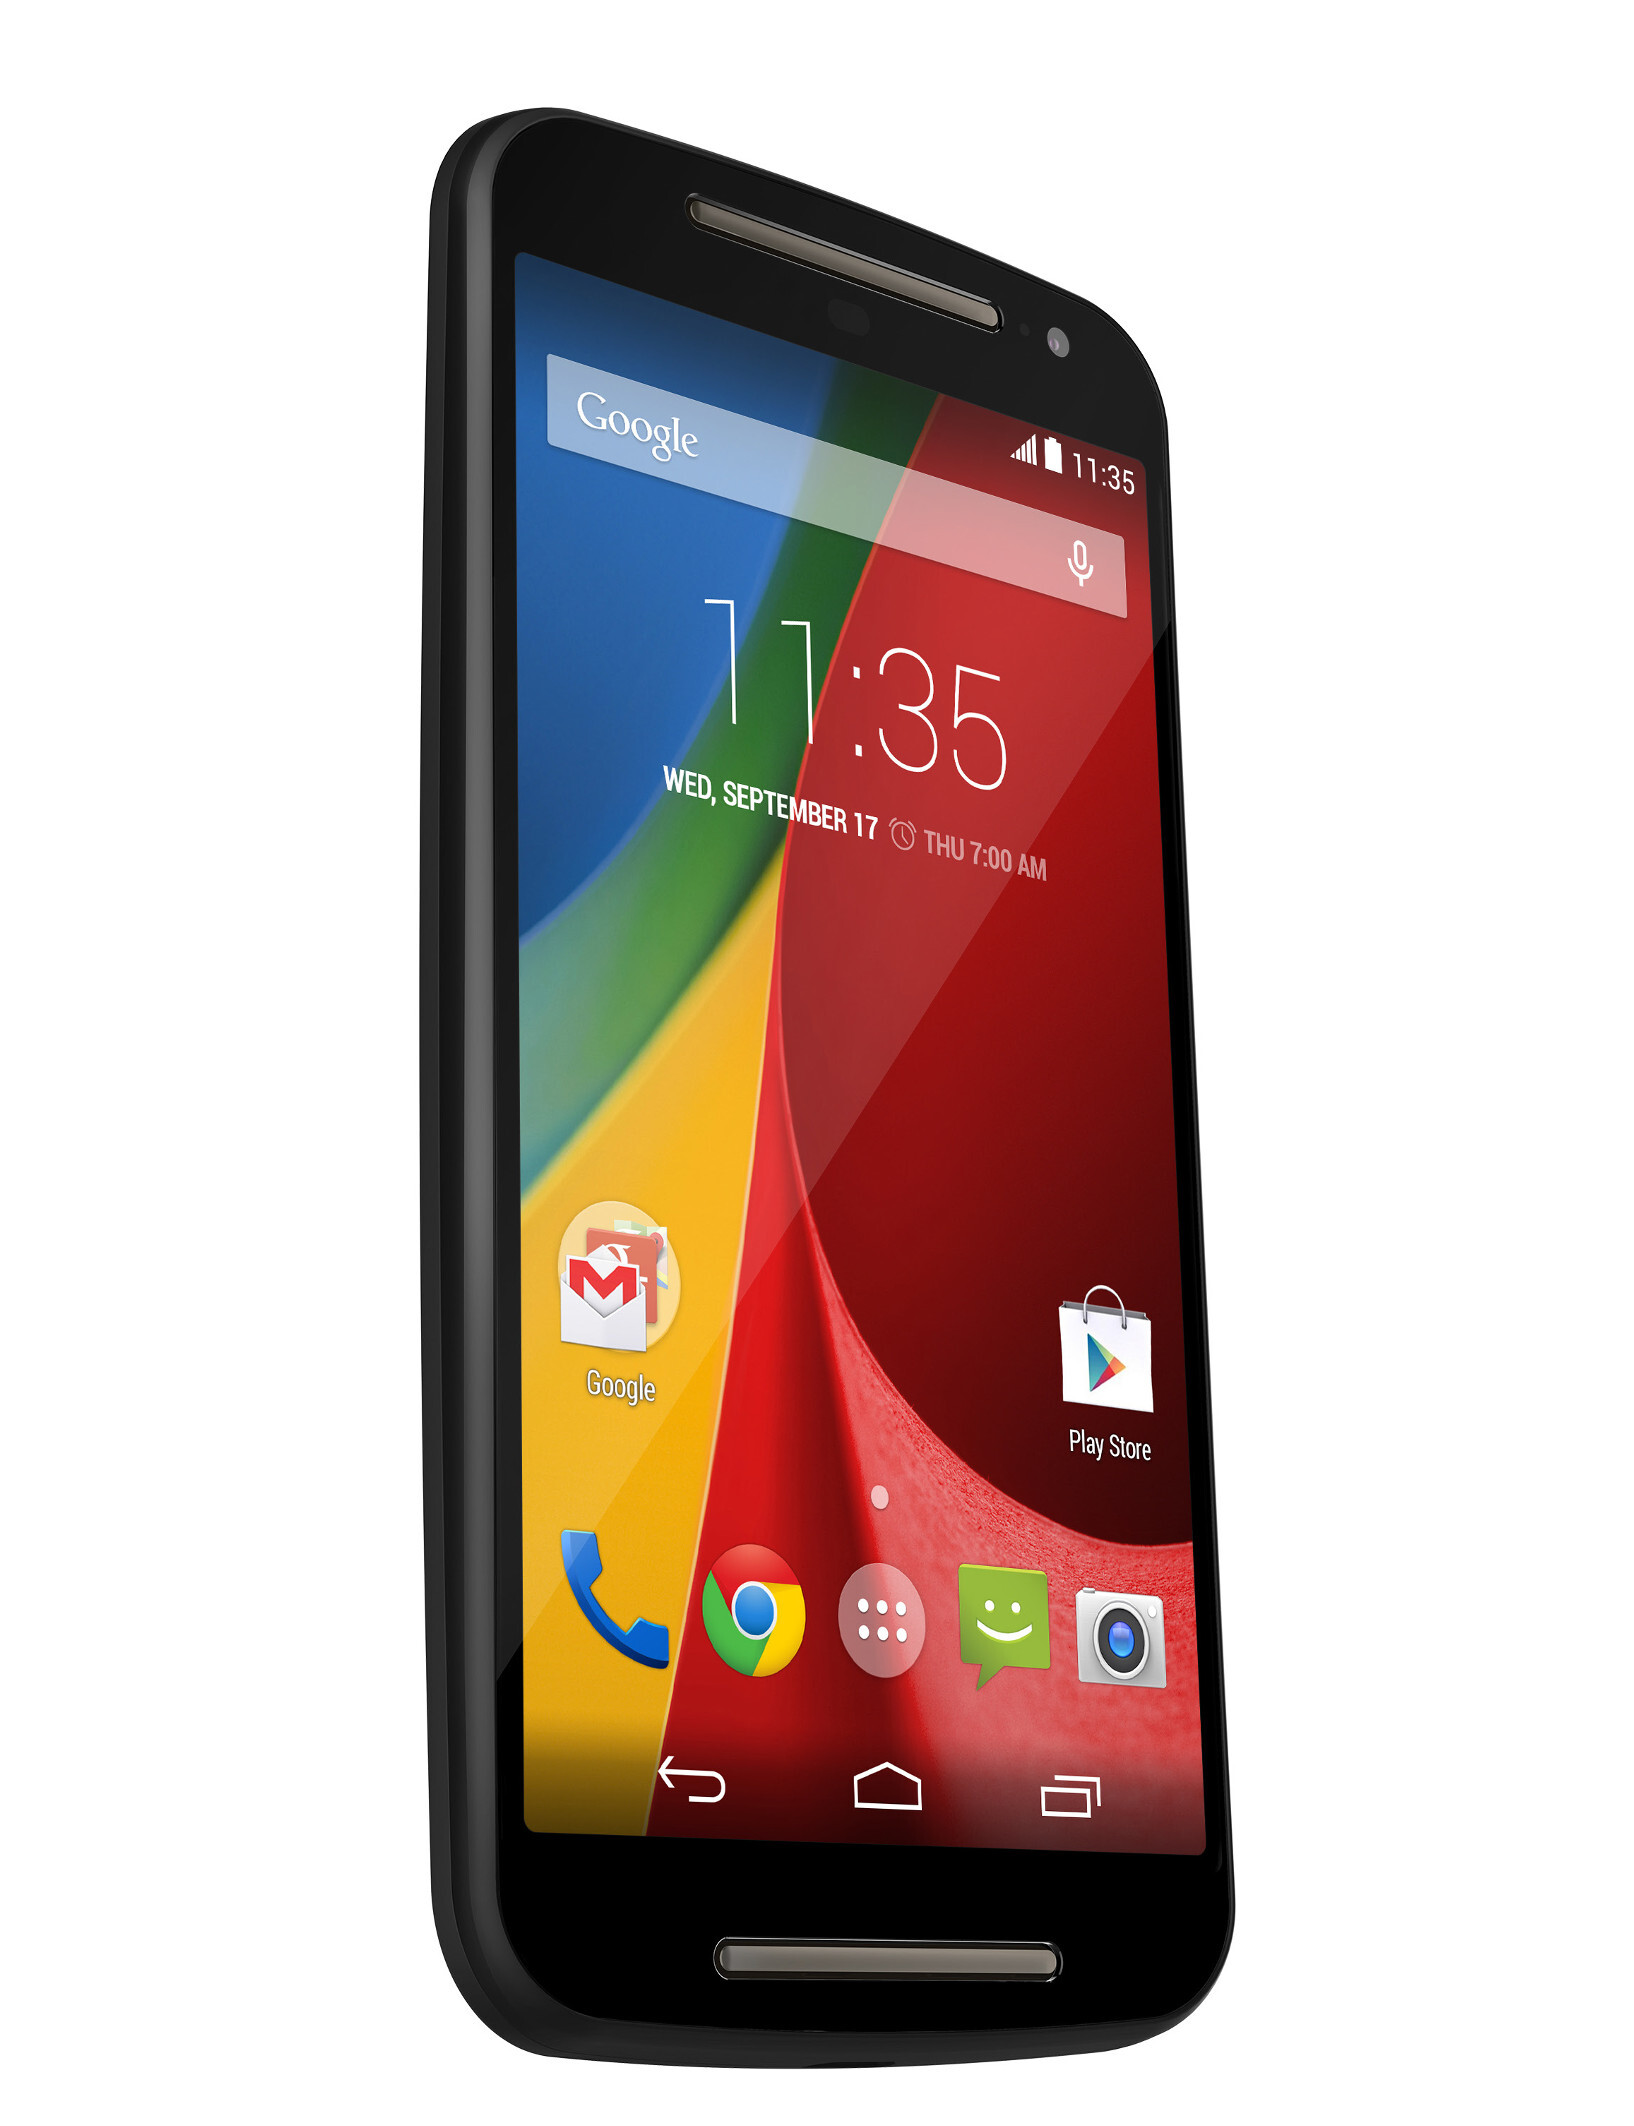 Android 5 0 2 update reportedly rolling out to Moto G (2014